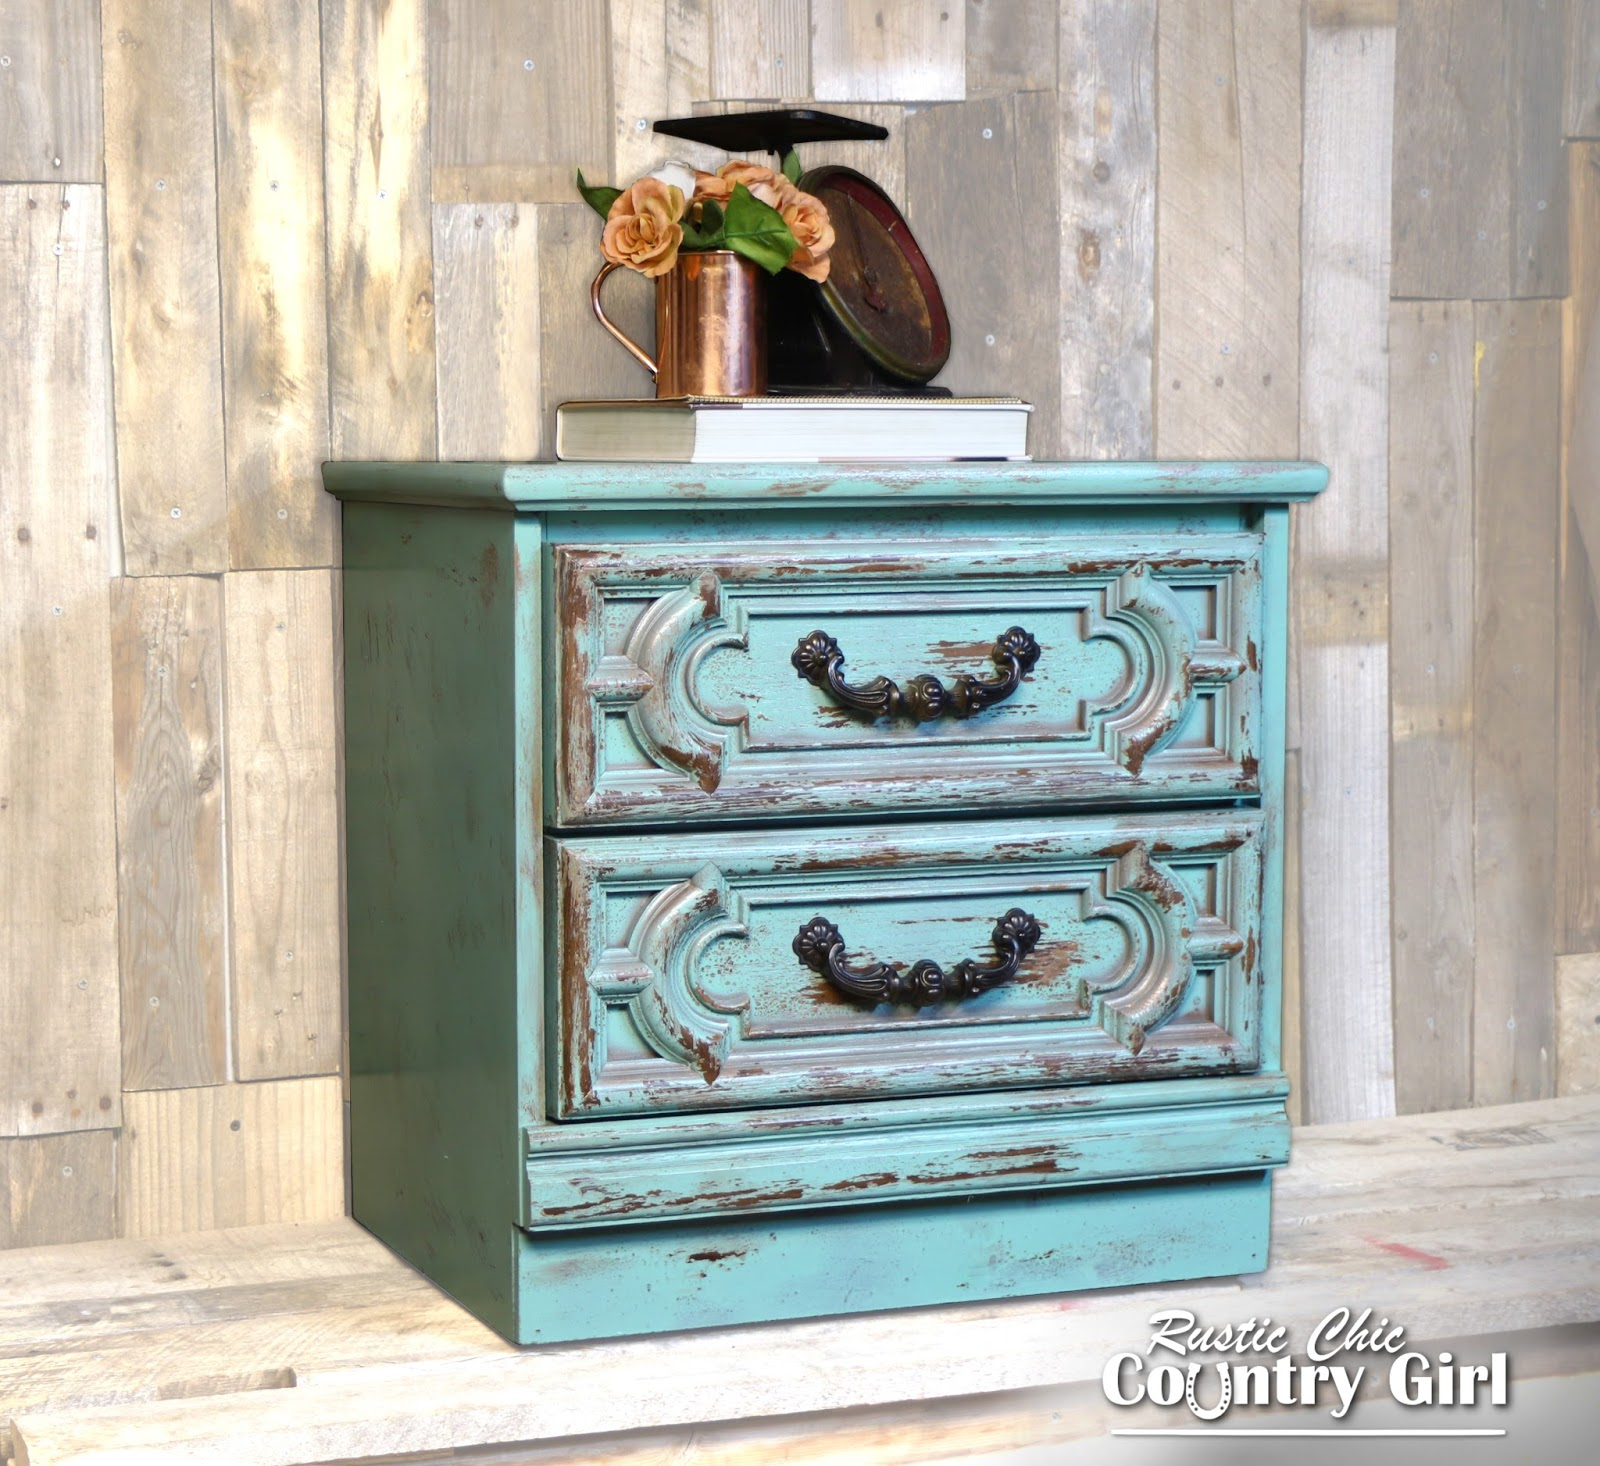 Rustic chic country girl steampunk inspired nightstand for How to build a nightstand from scratch